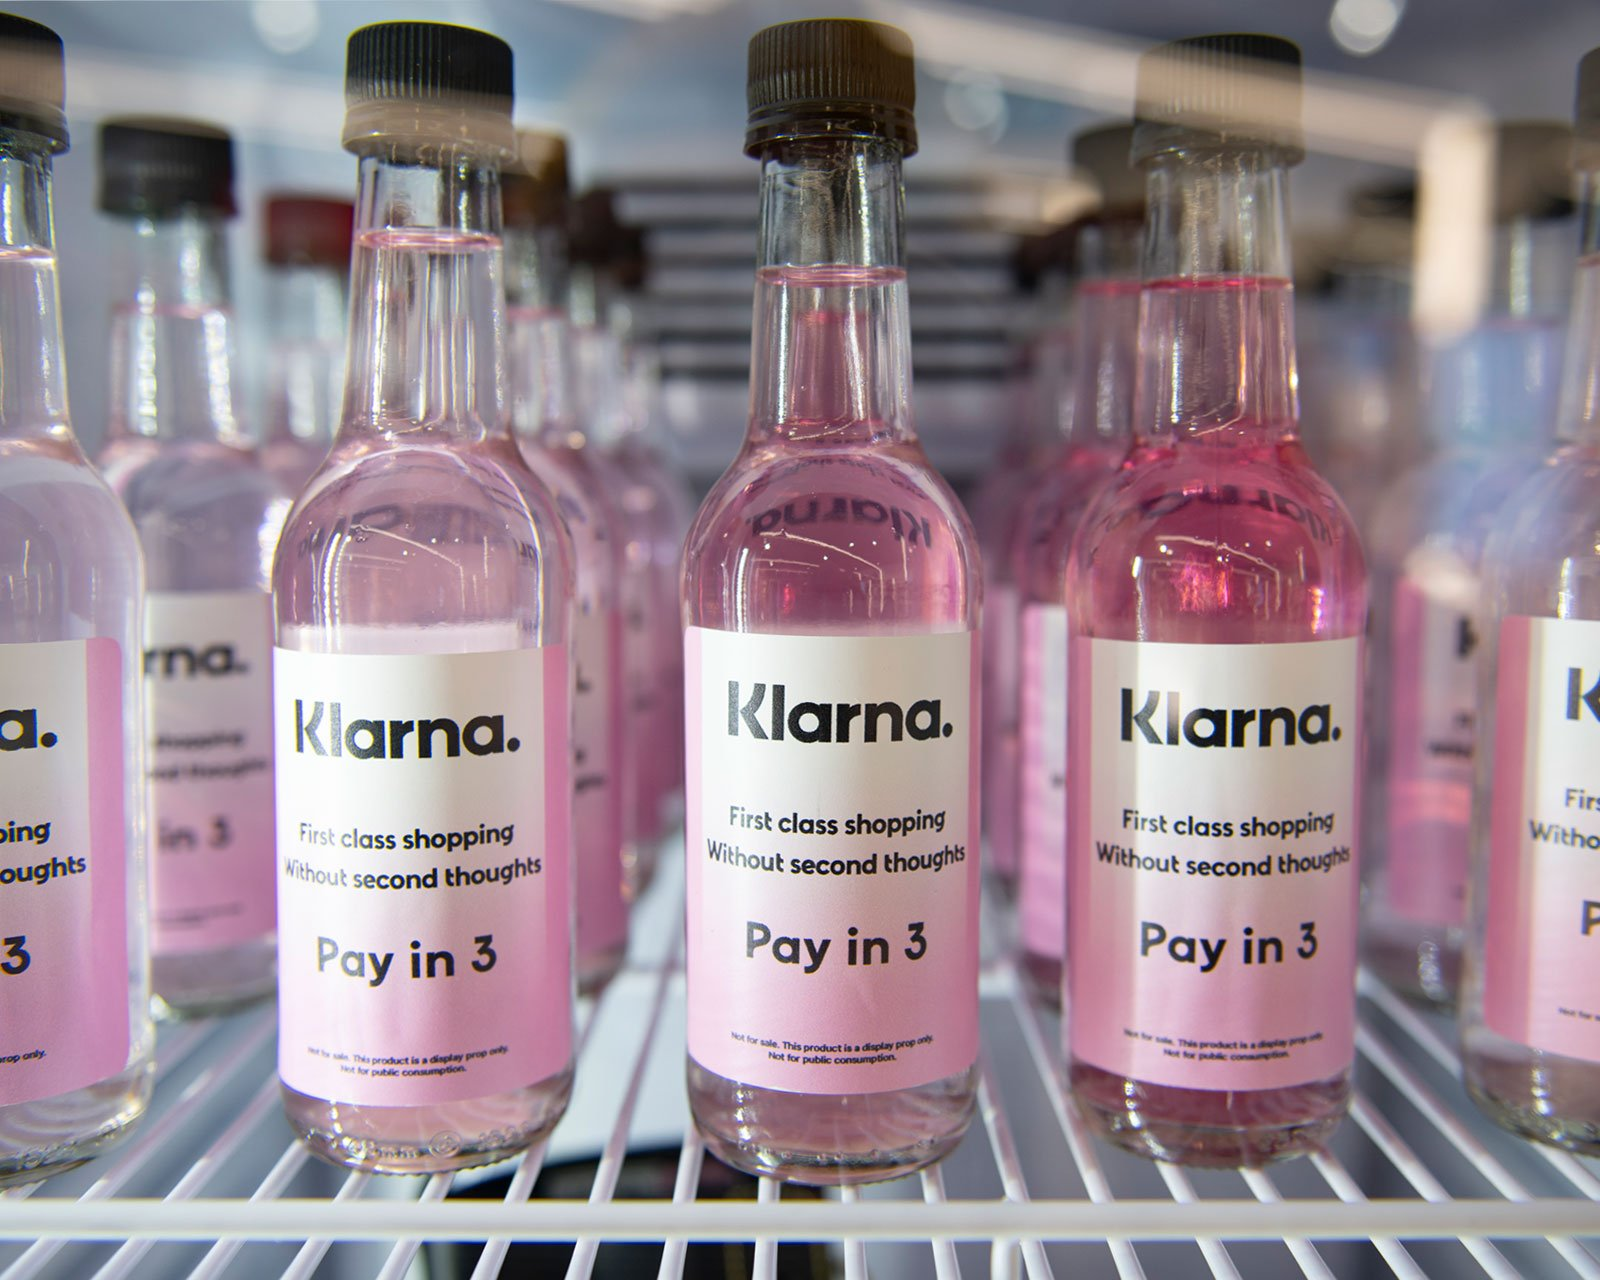 Klarna labelled bottles